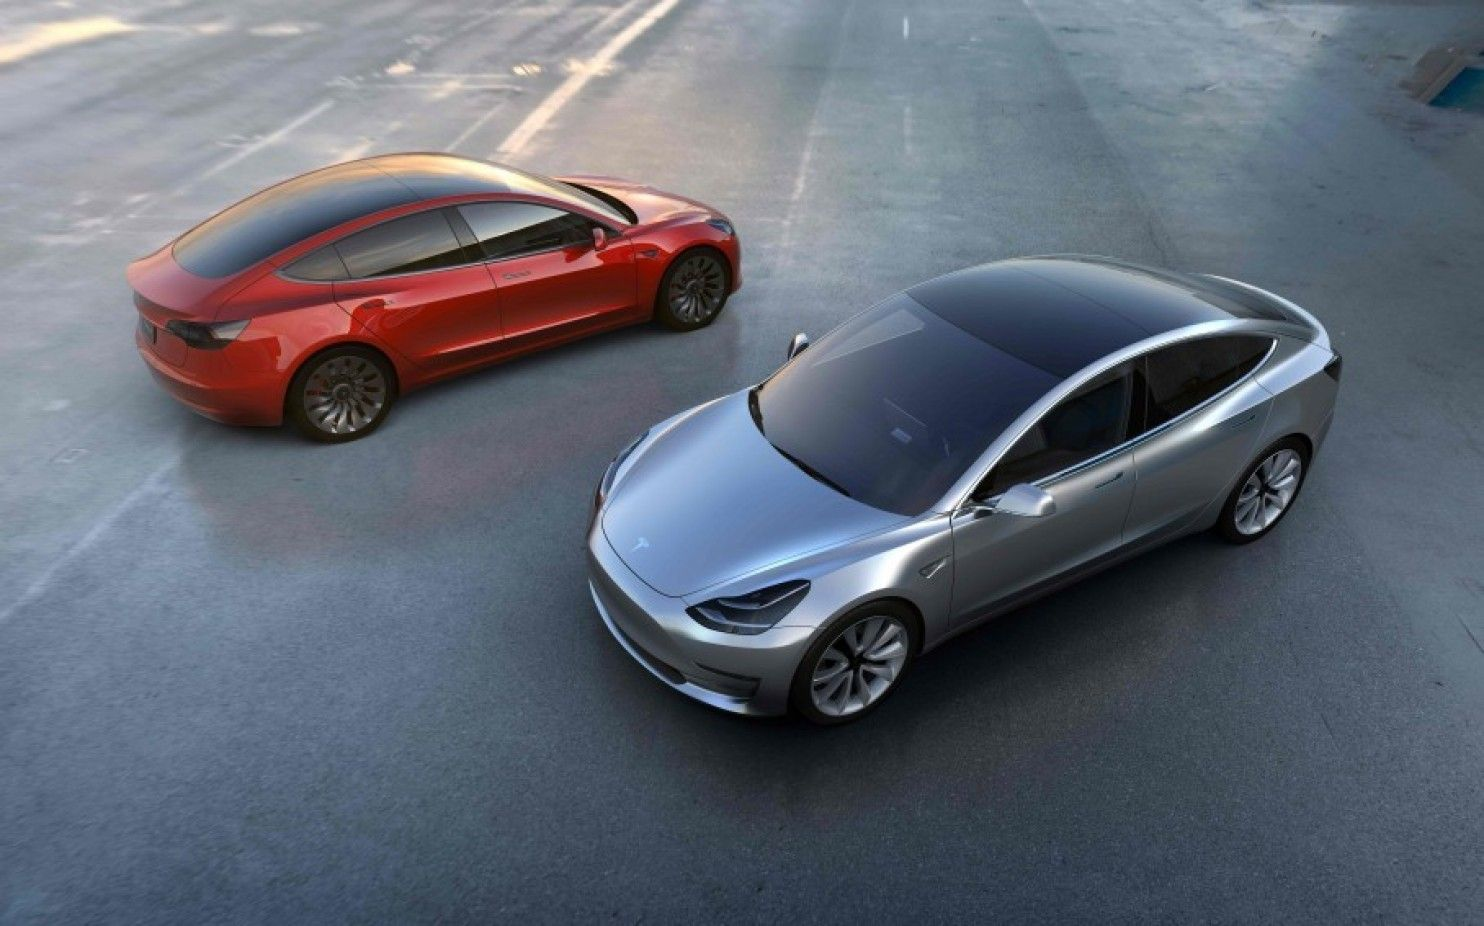 How do we jam the roads with Teslas by 2030? Just ask